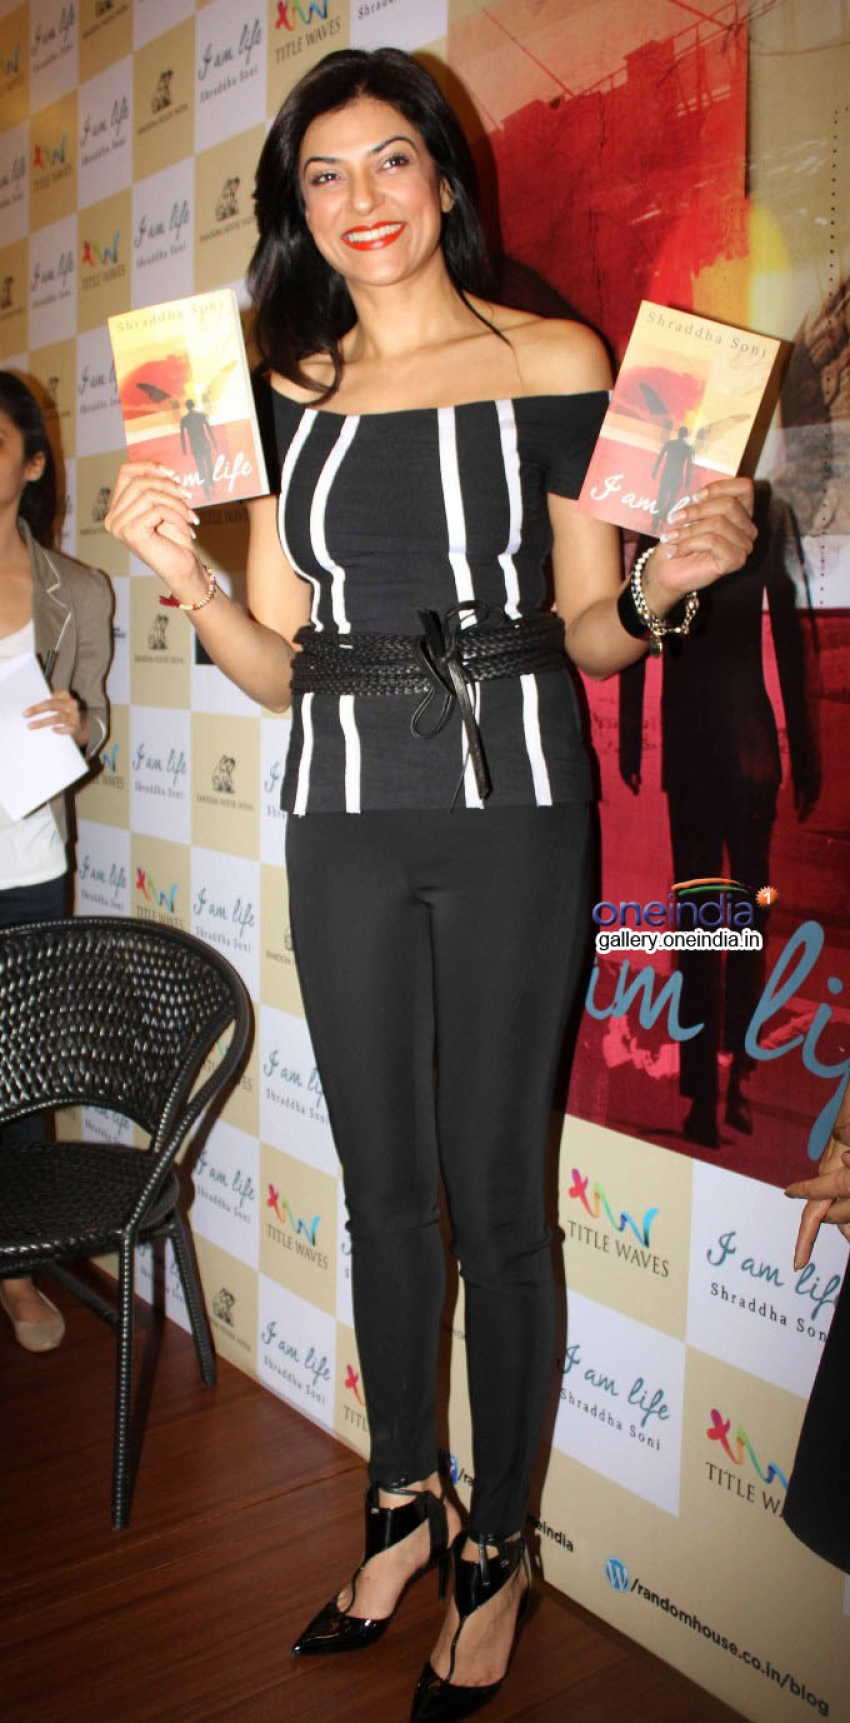 Sushmita Sen launches Shraddha Soni's book I am Life Photos